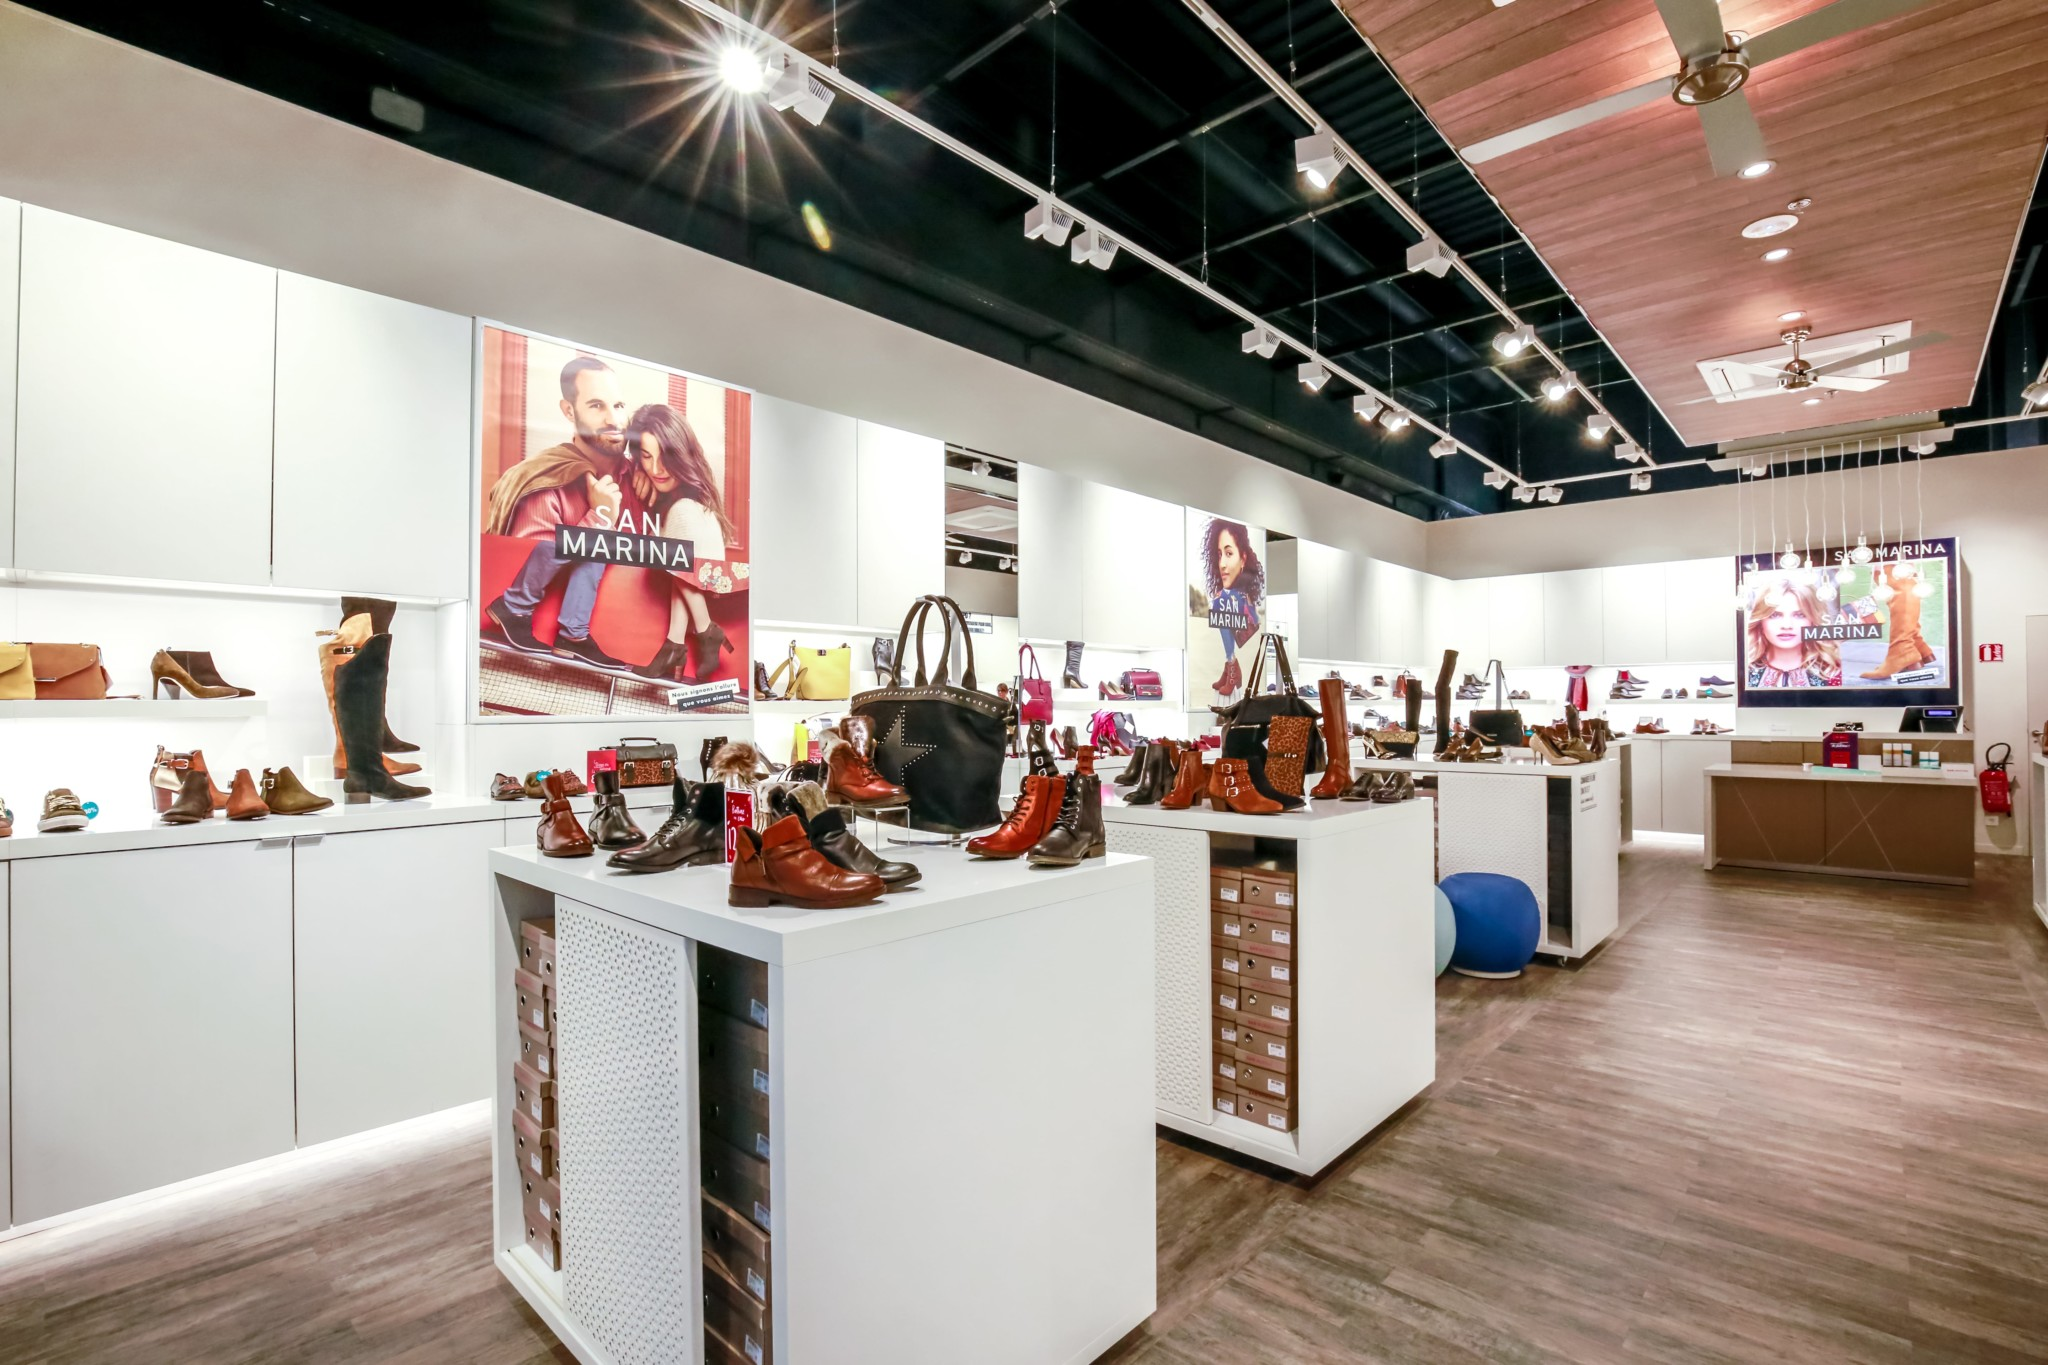 https://the-place-to-be.fr/wp-content/uploads/2020/12/boutique-chaussures-san-marina-promotion-soldes-bonplan-806f514d.jpg